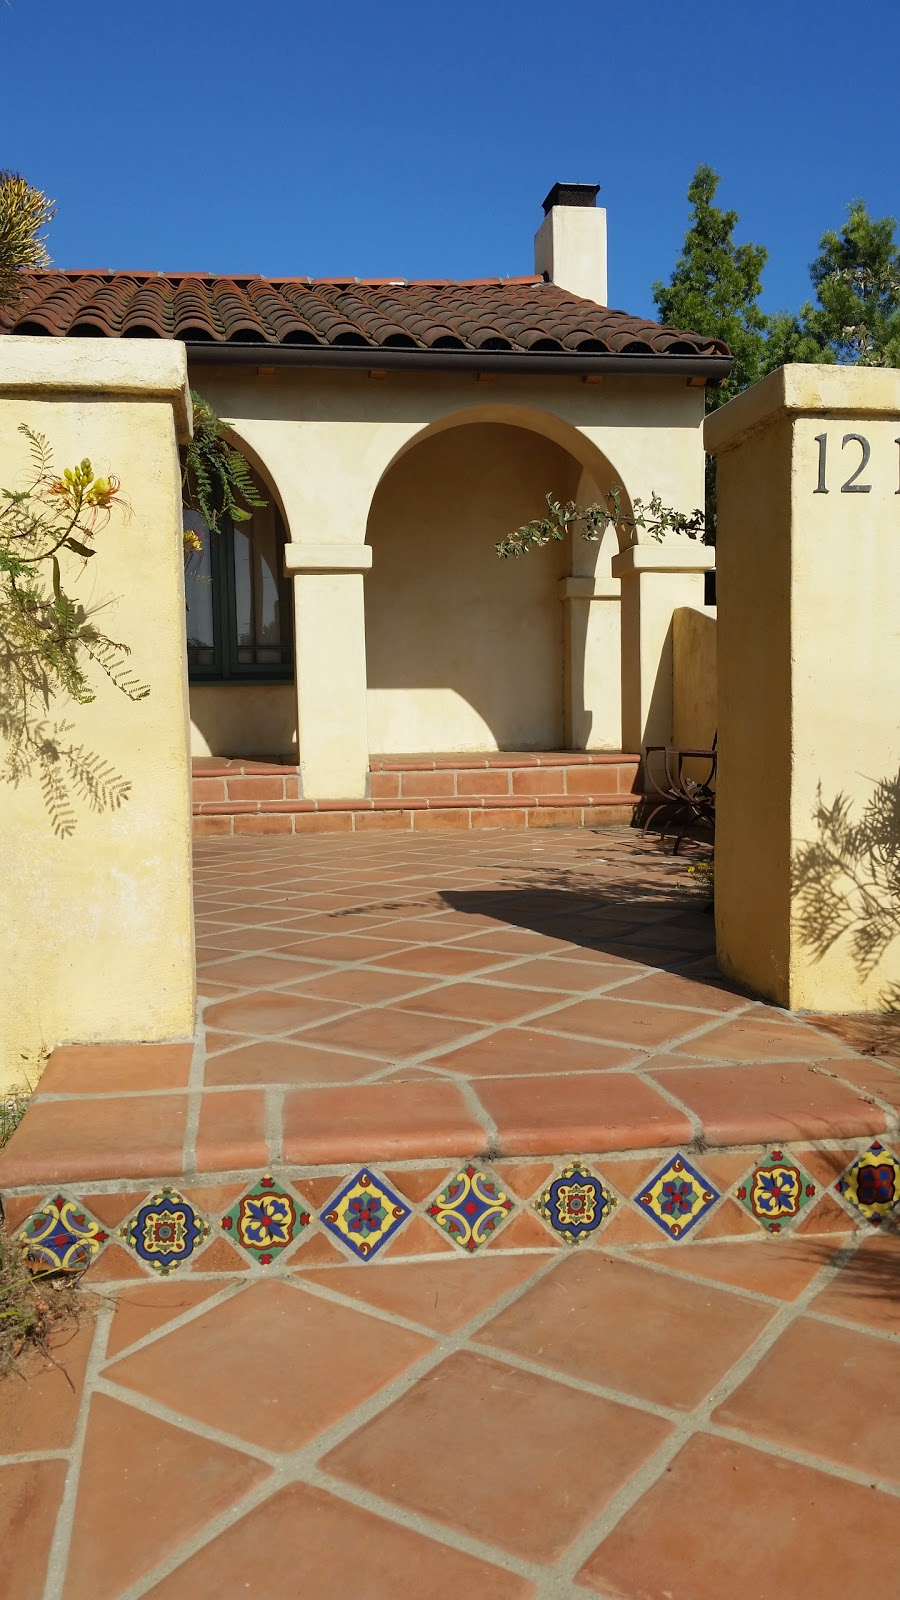 Avente Tile Talk: Spanish Tile Details Charm this Los ...